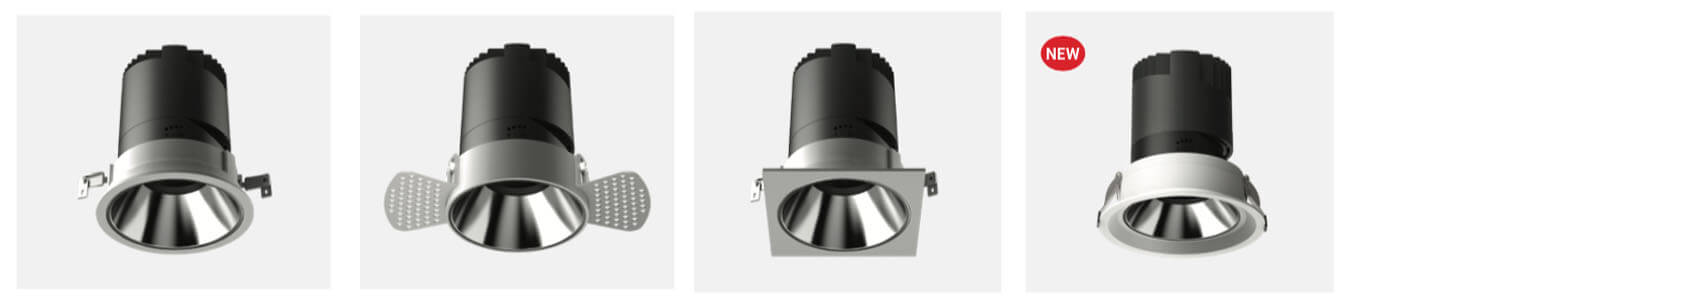 30w hotel ledspotlight recessed - Led Spotlight Recessed with 6 colors reflector